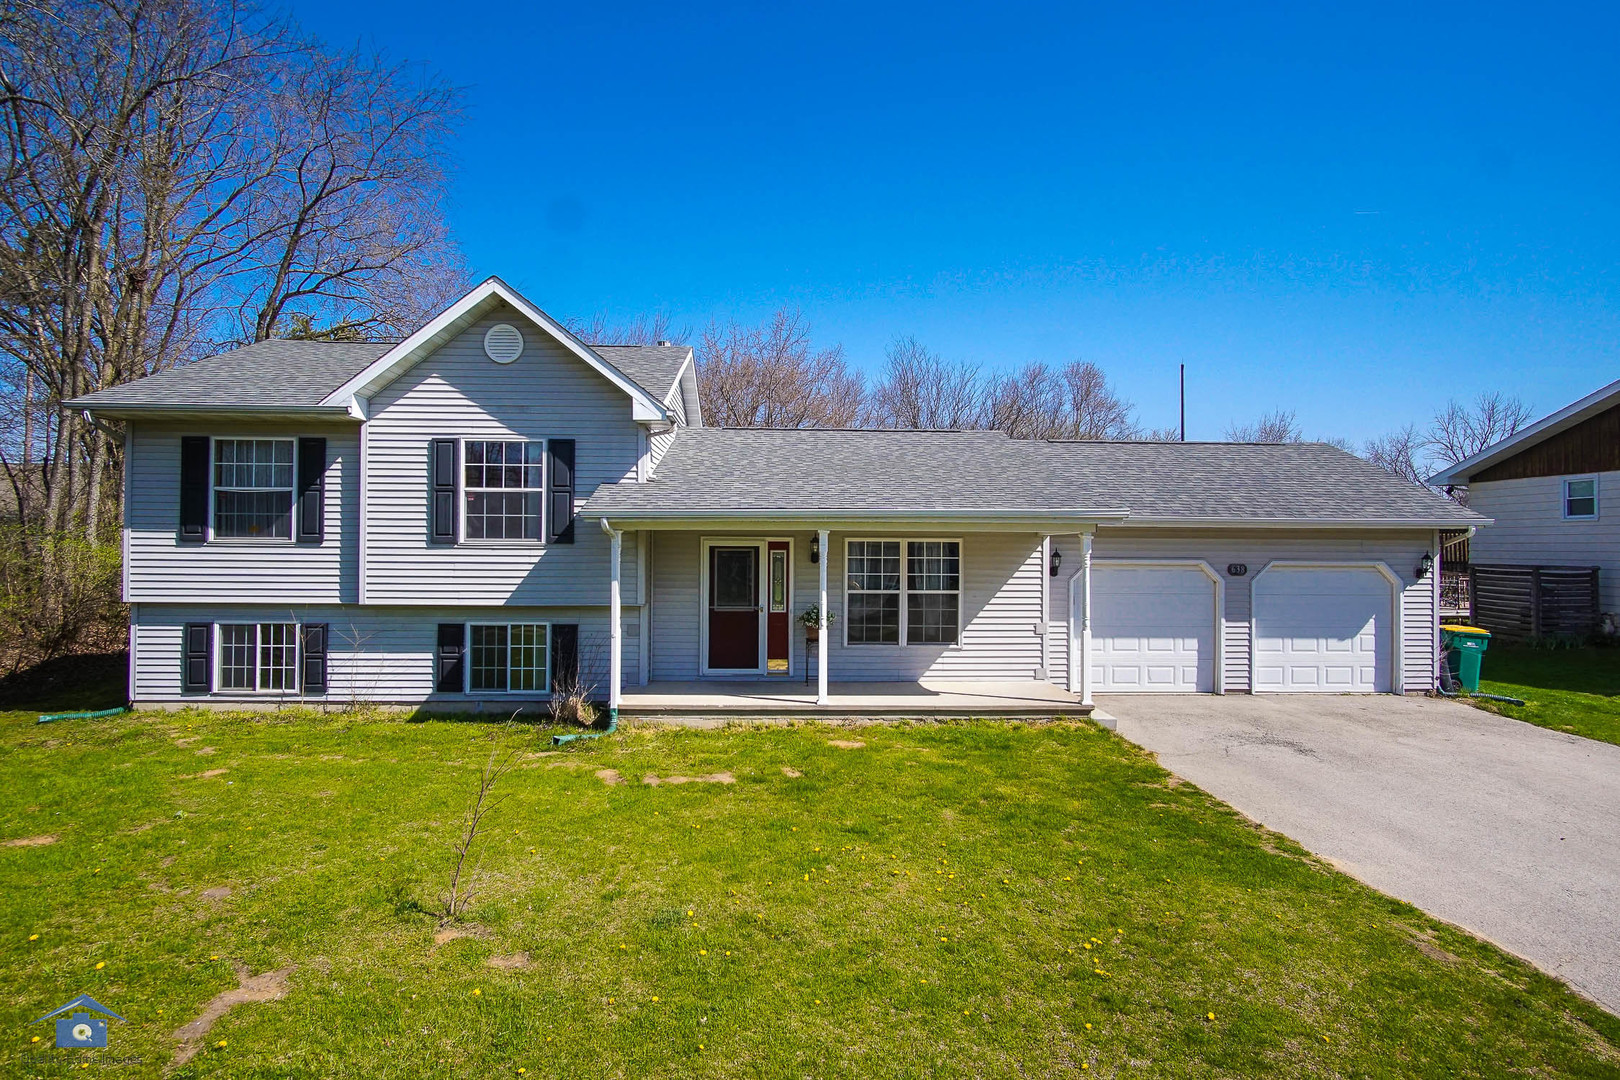 Property for sale at 638 West 2nd Street, Braidwood,  IL 60408